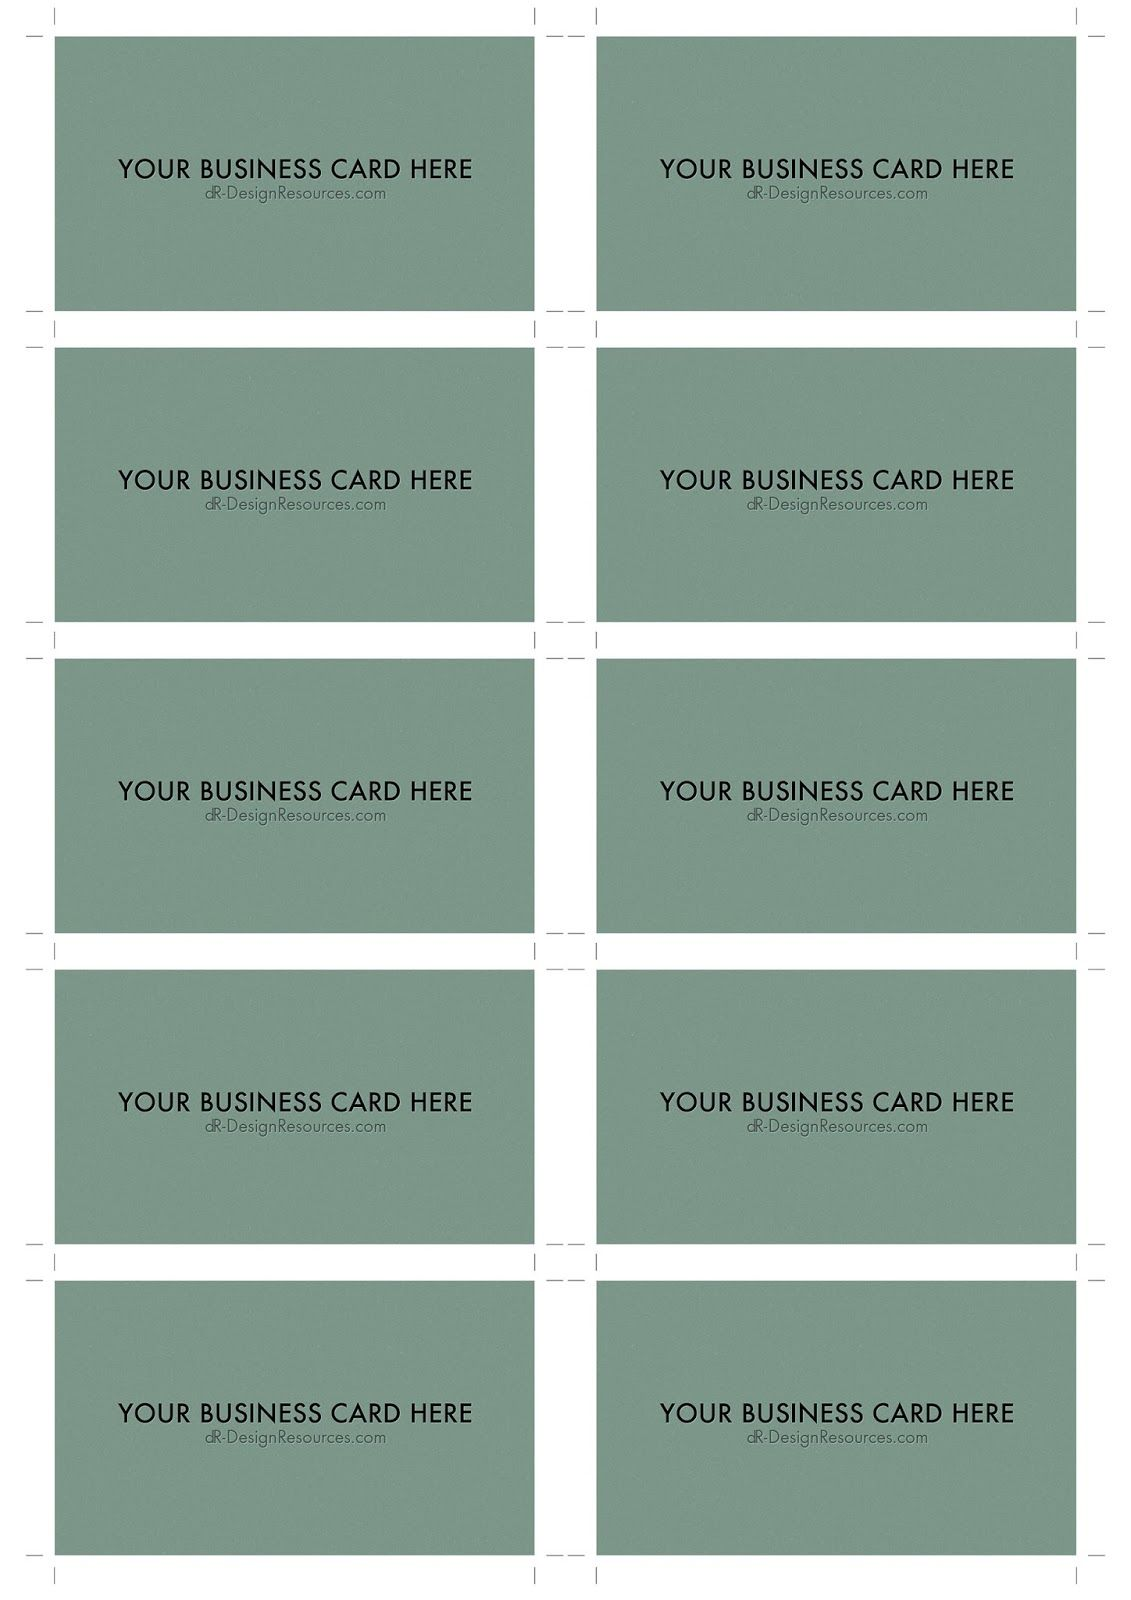 A4 business card template psd 10 per sheet business cards a4 business card template psd 10 per sheet flashek Gallery